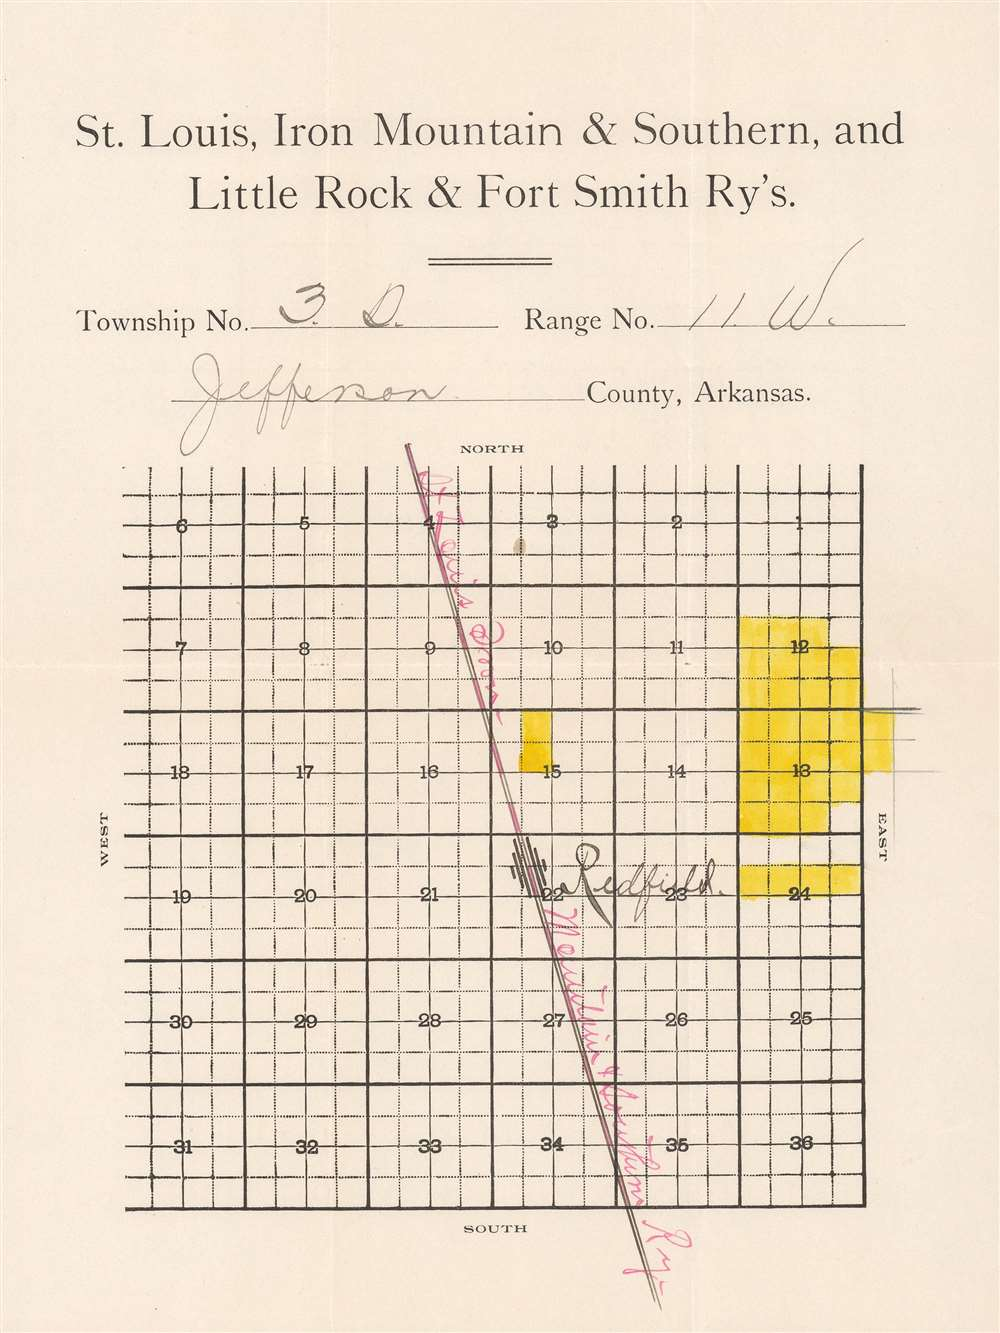 Map Showing the Land Grands of the St. Louis, Iron Mountain and Southern, and Little Rock and Fort Smith Railways in Arkansas. - Alternate View 2